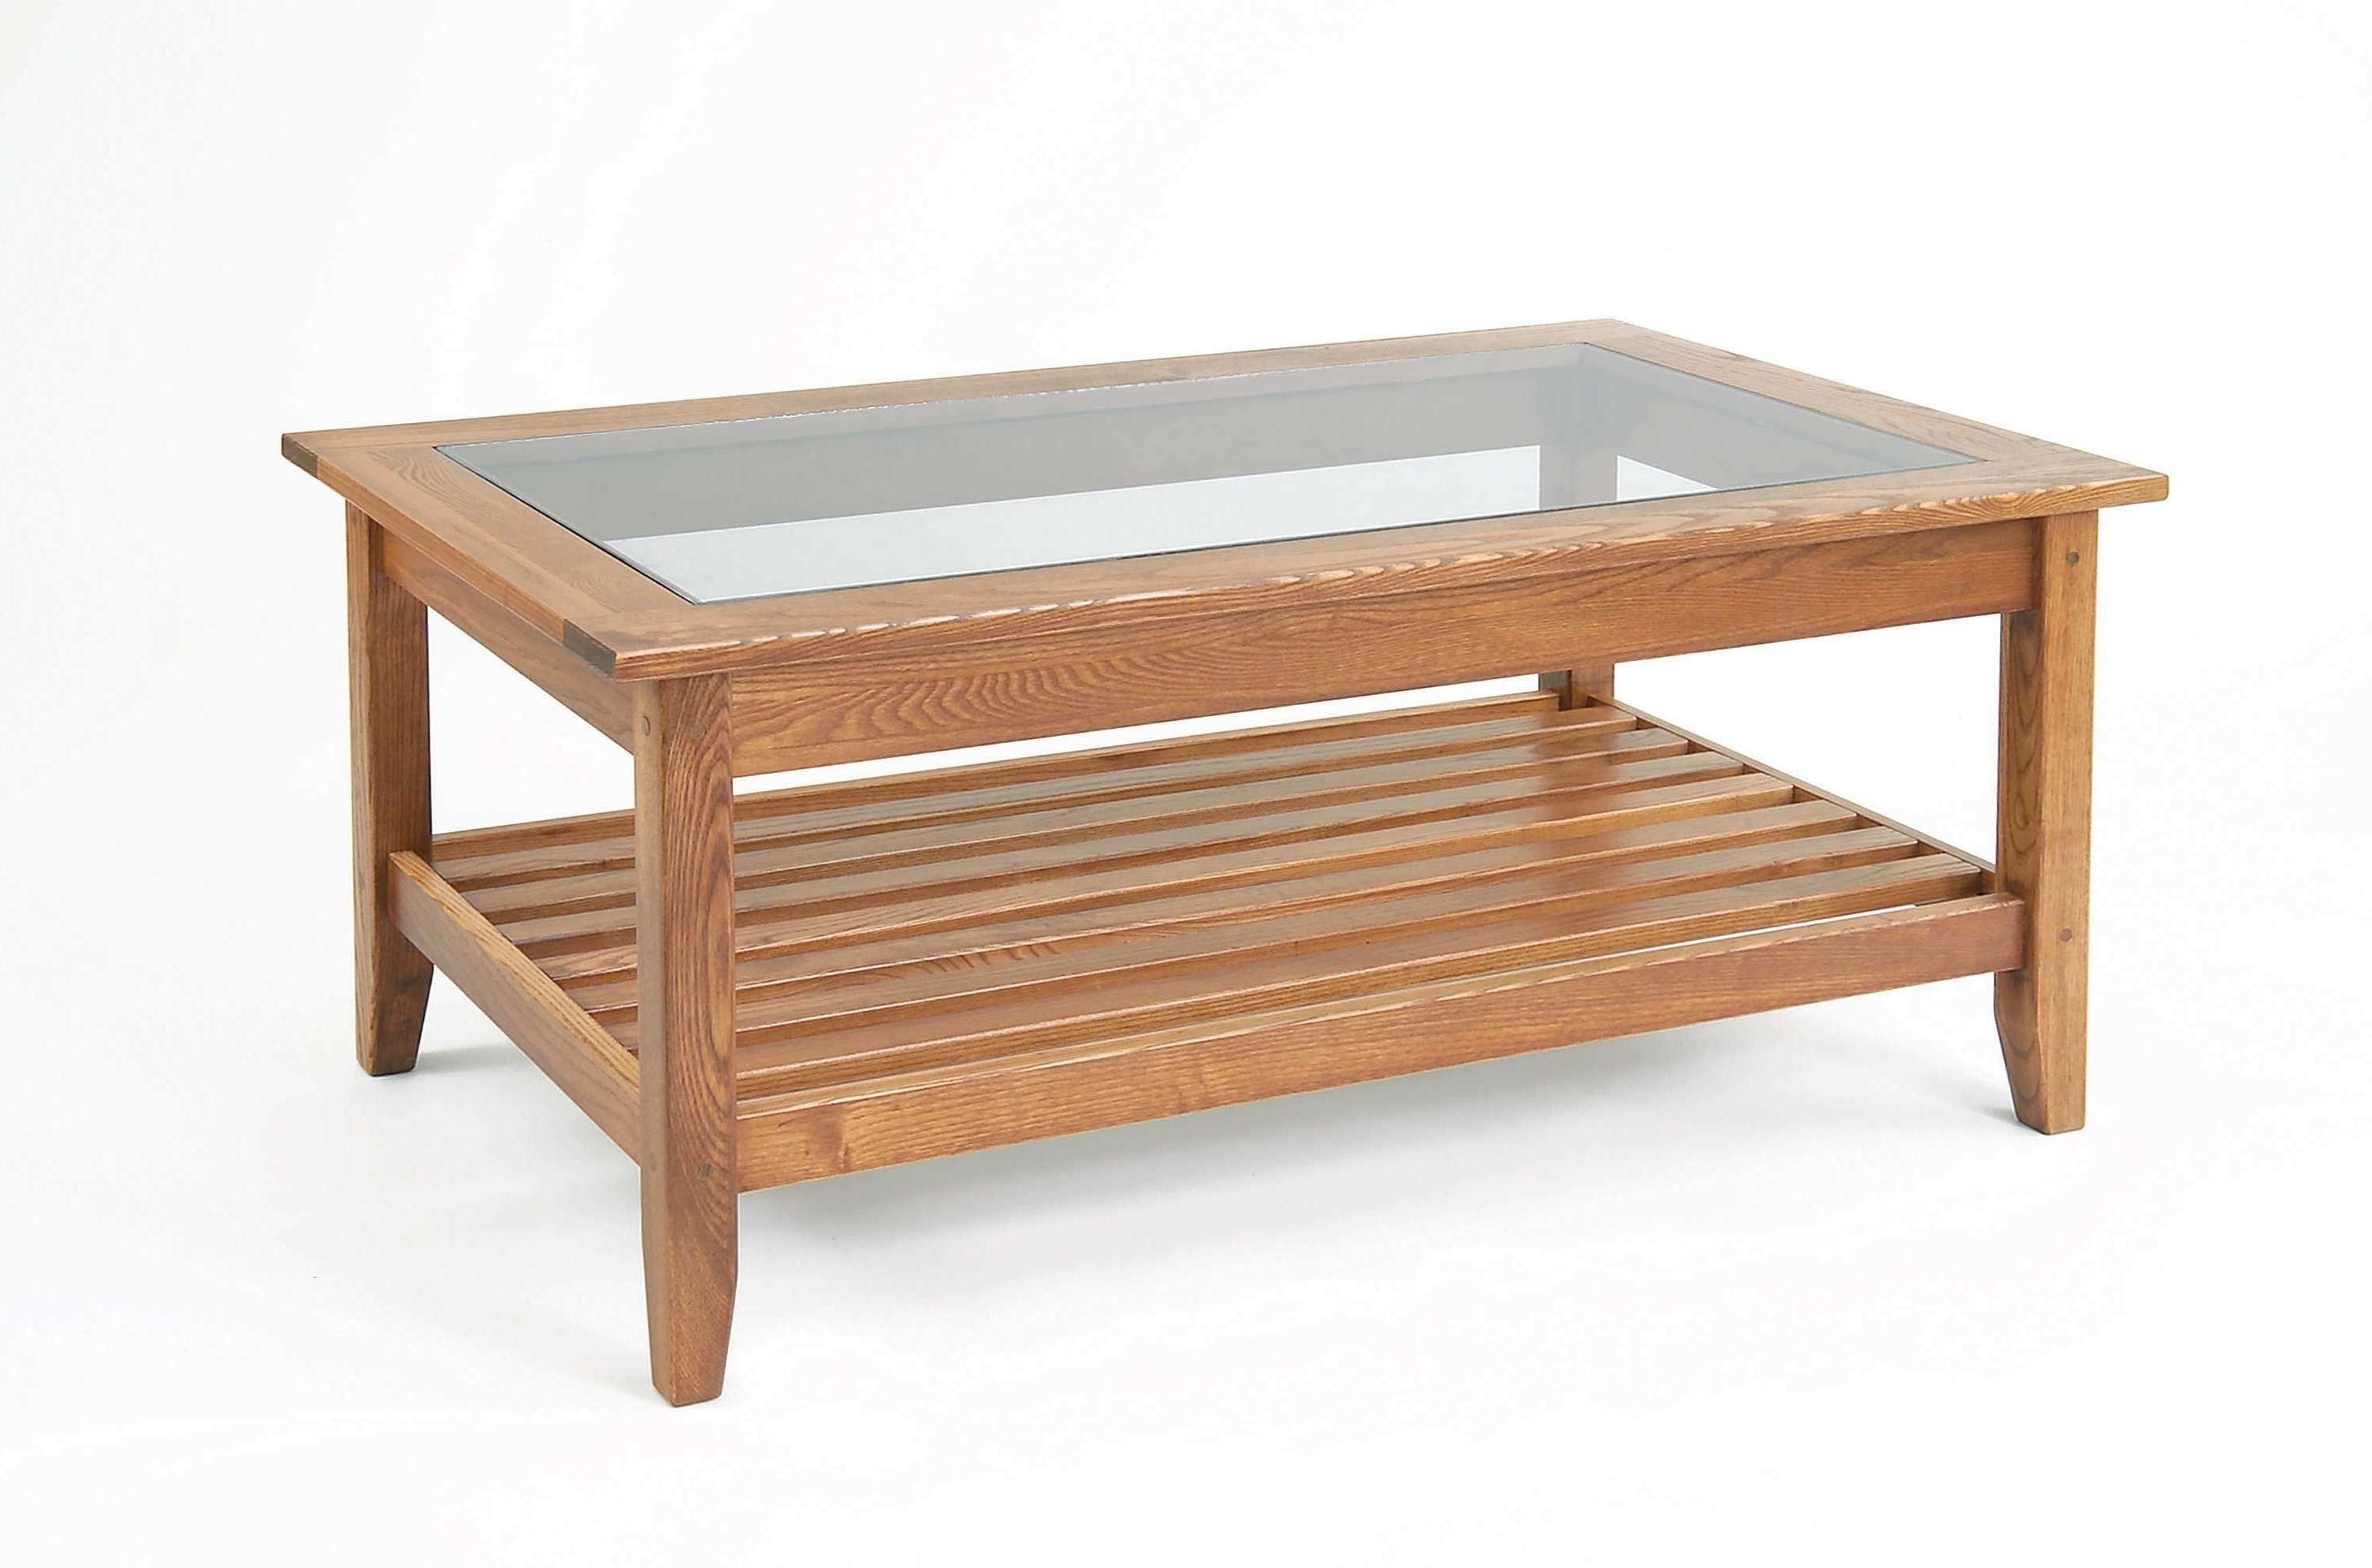 Fashionable Glass And Wood Coffee Tables Regarding Coffee Table, Wood Glass For Table Tops Glass Table Top Protector (View 10 of 20)